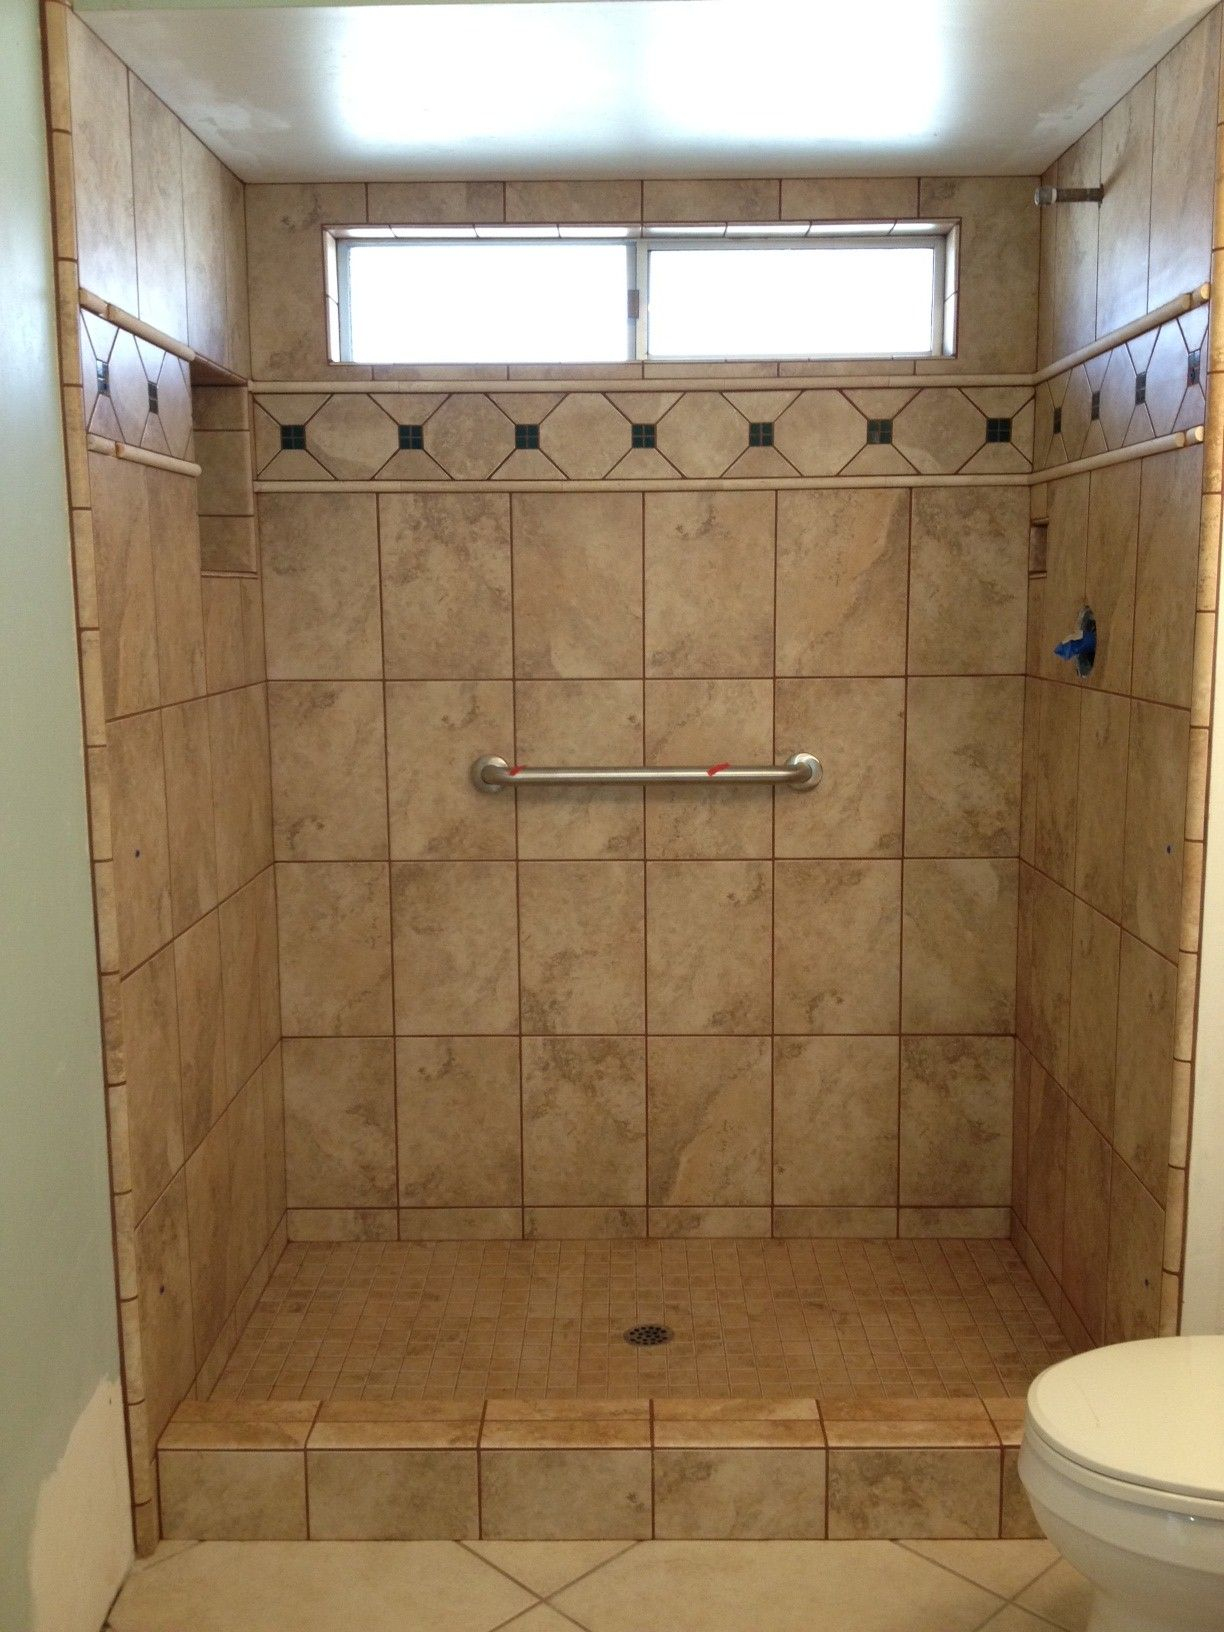 images of tiled showers. Photos Of Tiled Shower Stalls  Photos Gallery Custom Tile Work Co Ceramic Natural Stone Tiles